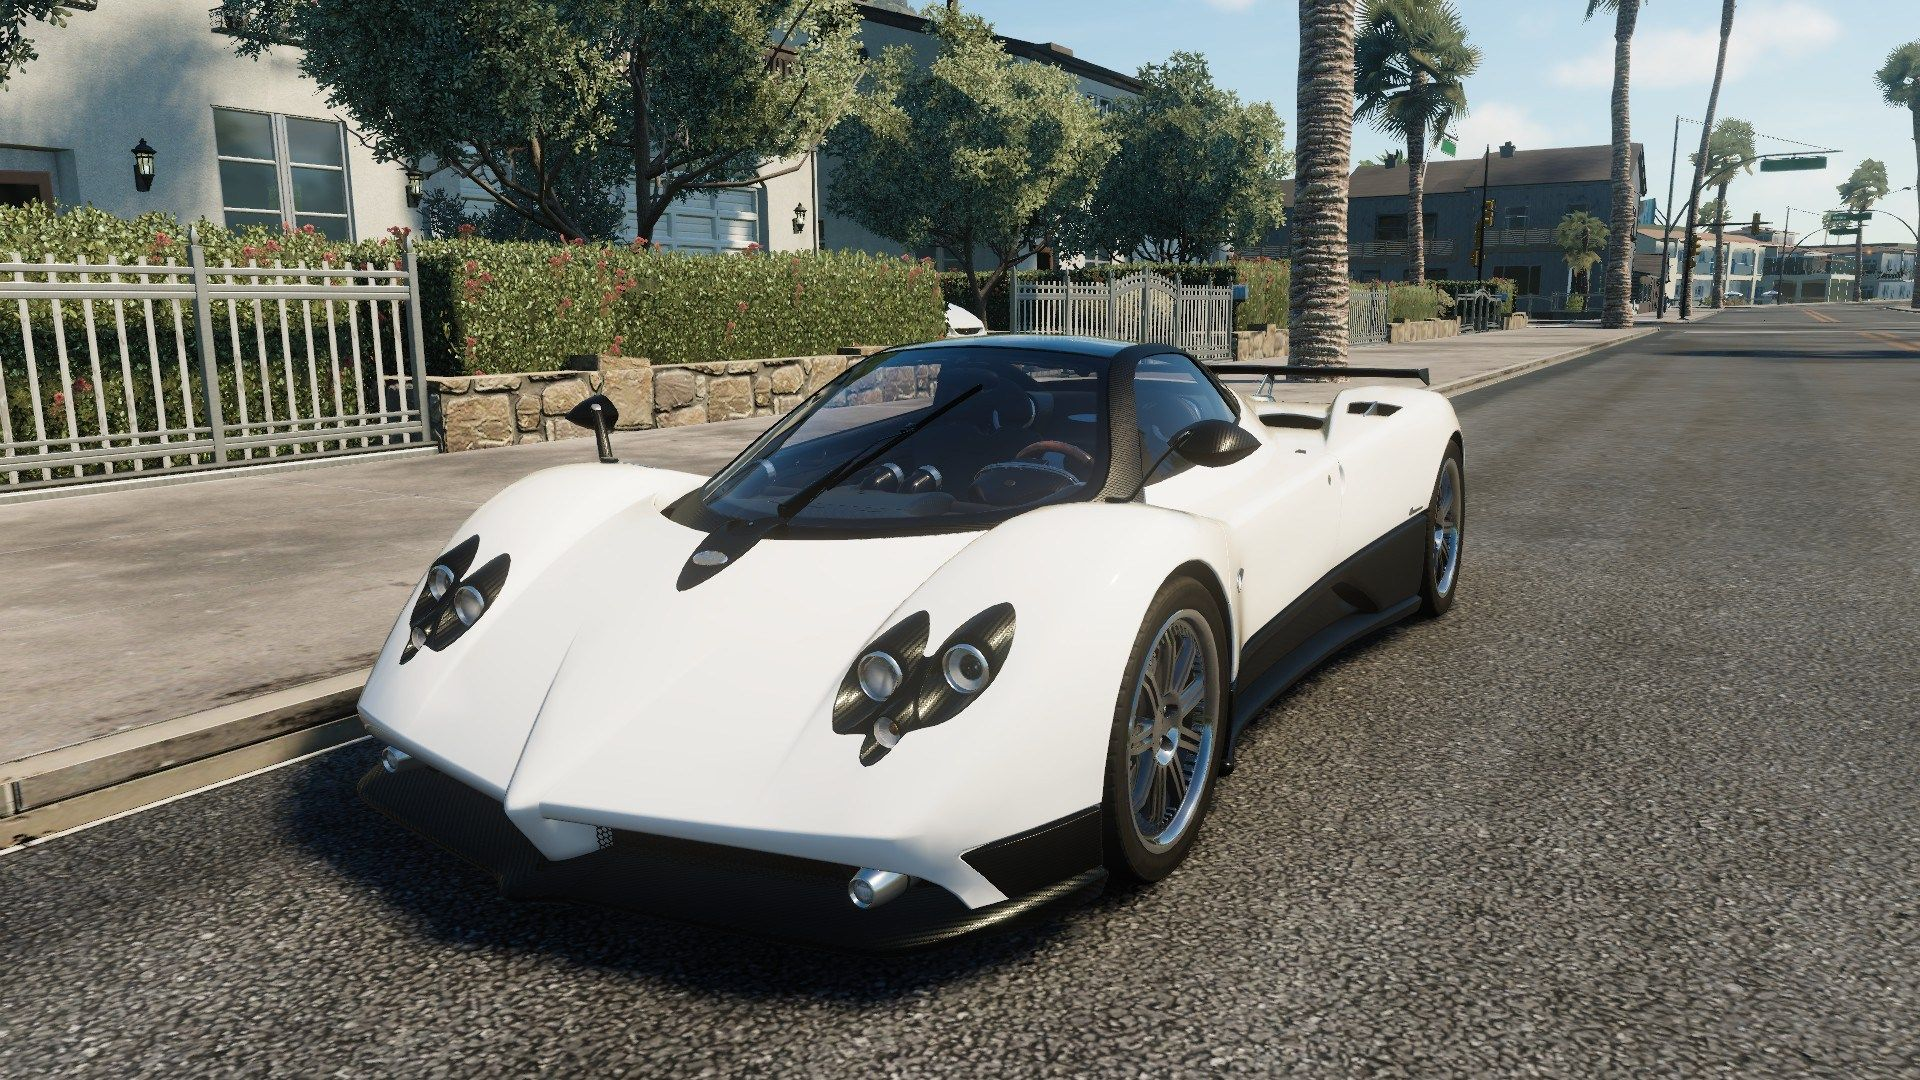 Bon Pagani Zonda Engine, Price, Release Date, Interior 2018 | 2018/2019 Car  Review | New Cars | Pinterest | Pagani Zonda, Engine And Cars